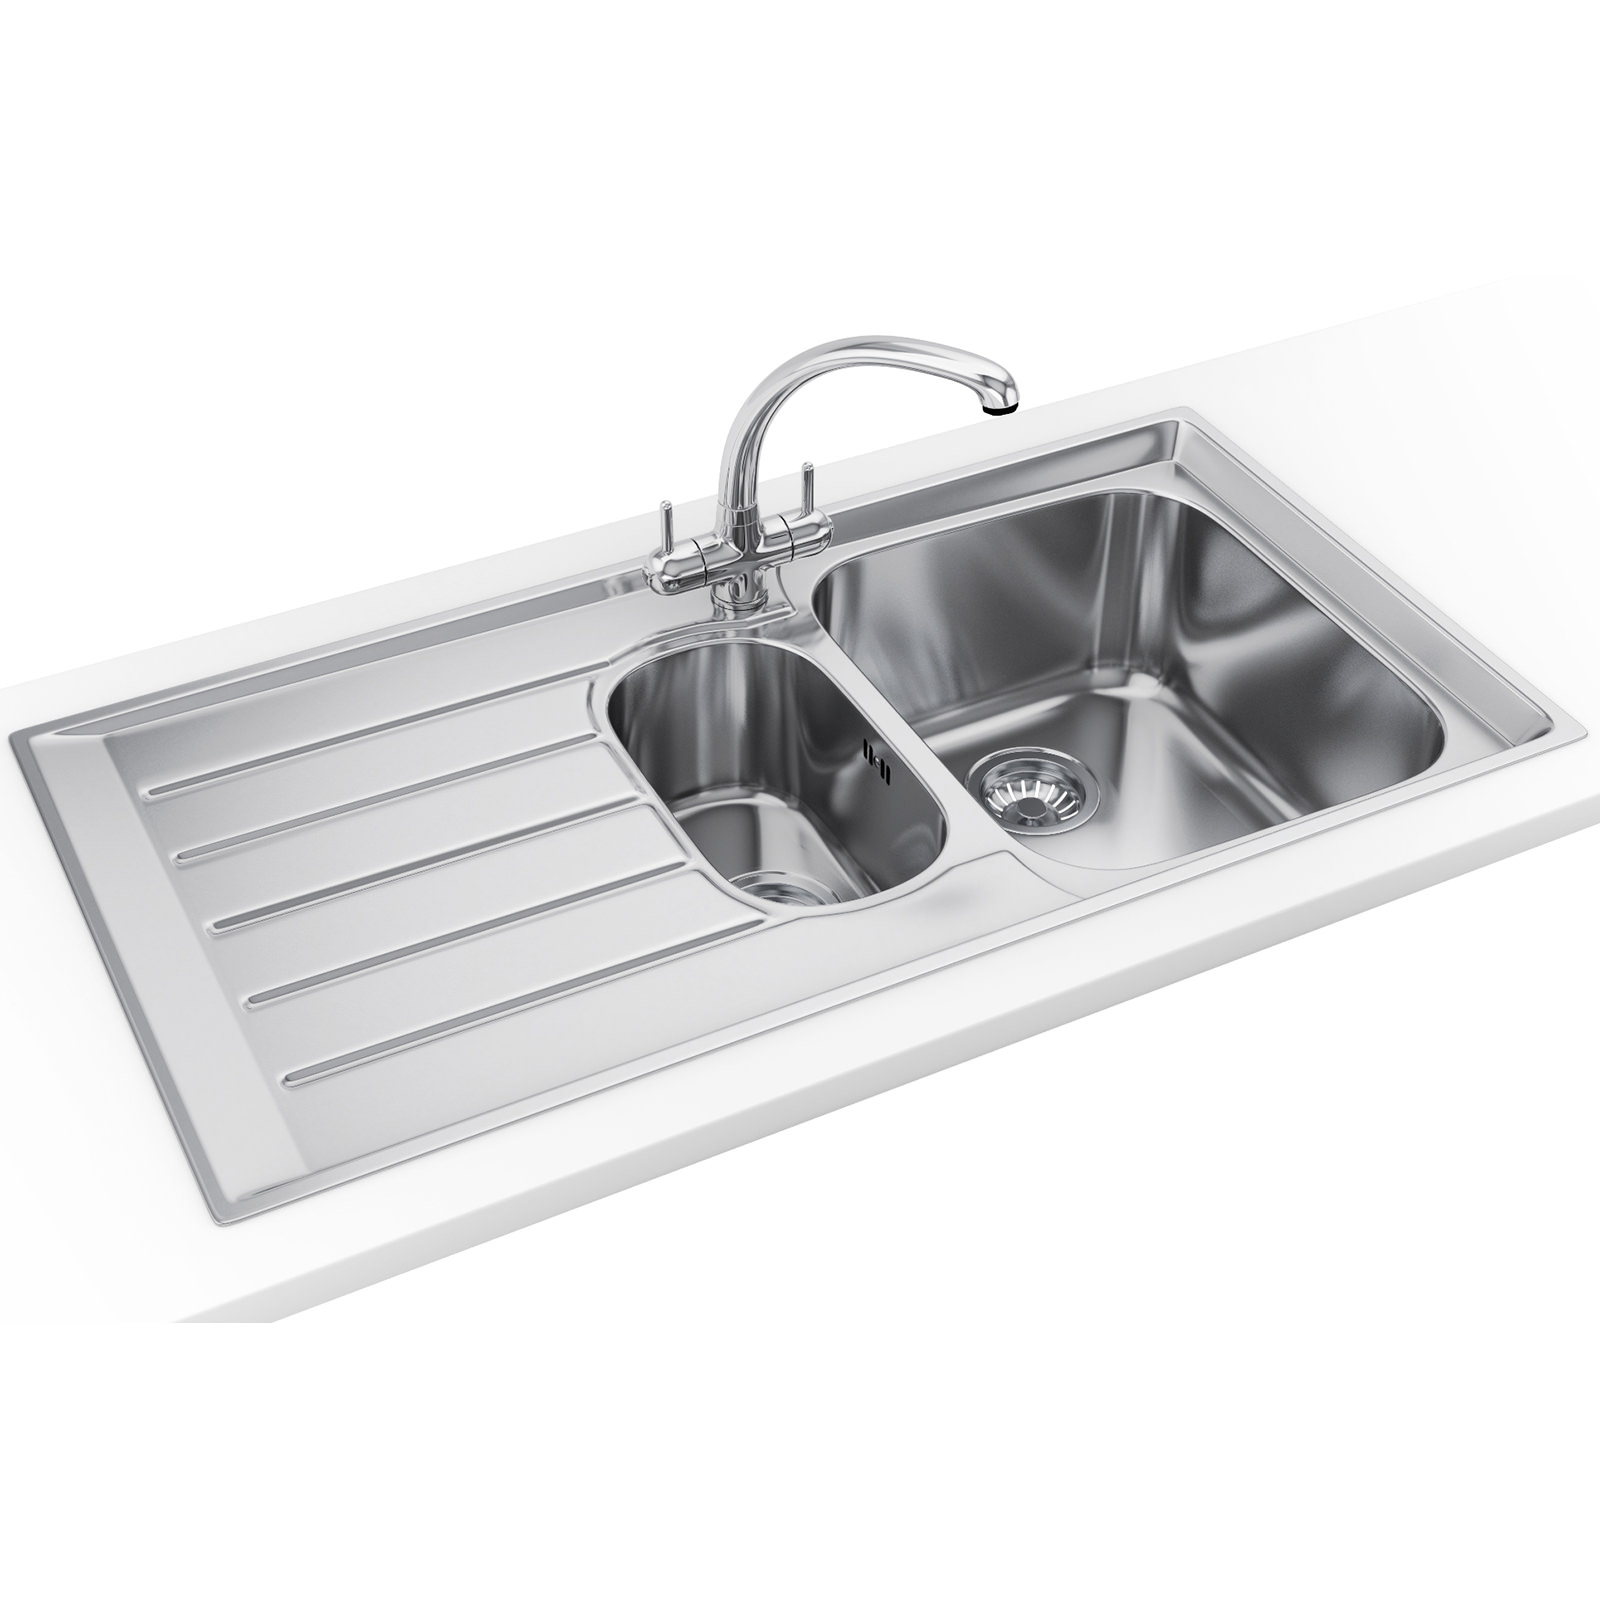 Neptune Sink : Franke Neptune Propack NEX 251 Stainless Steel Kitchen Sink And Tap